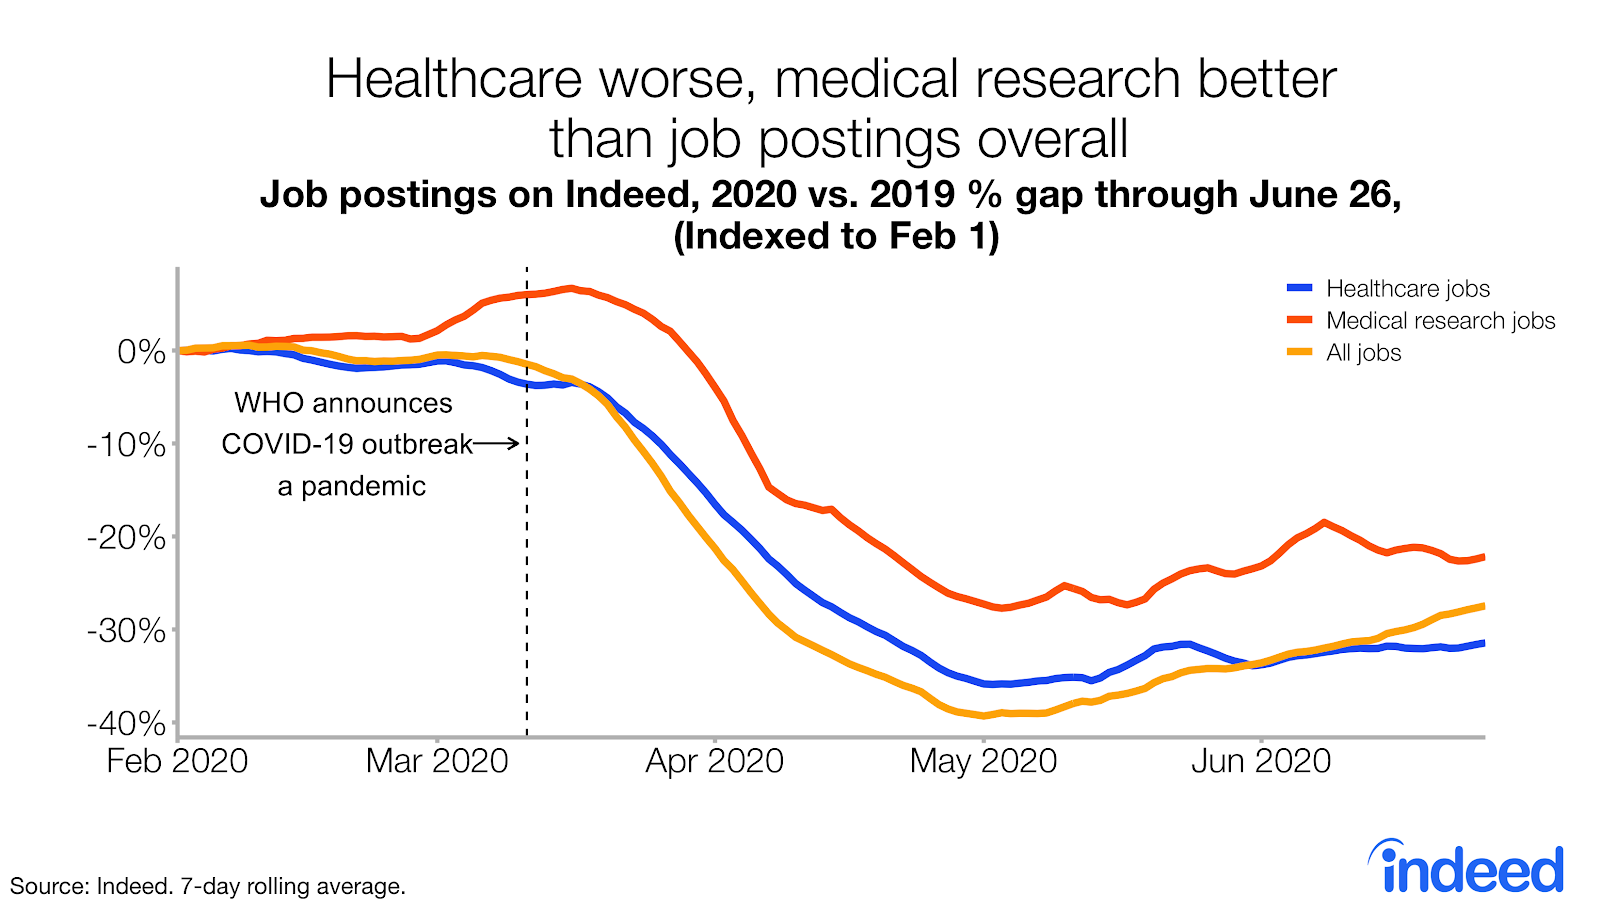 Healthcare worse, medical research better than job postings overall